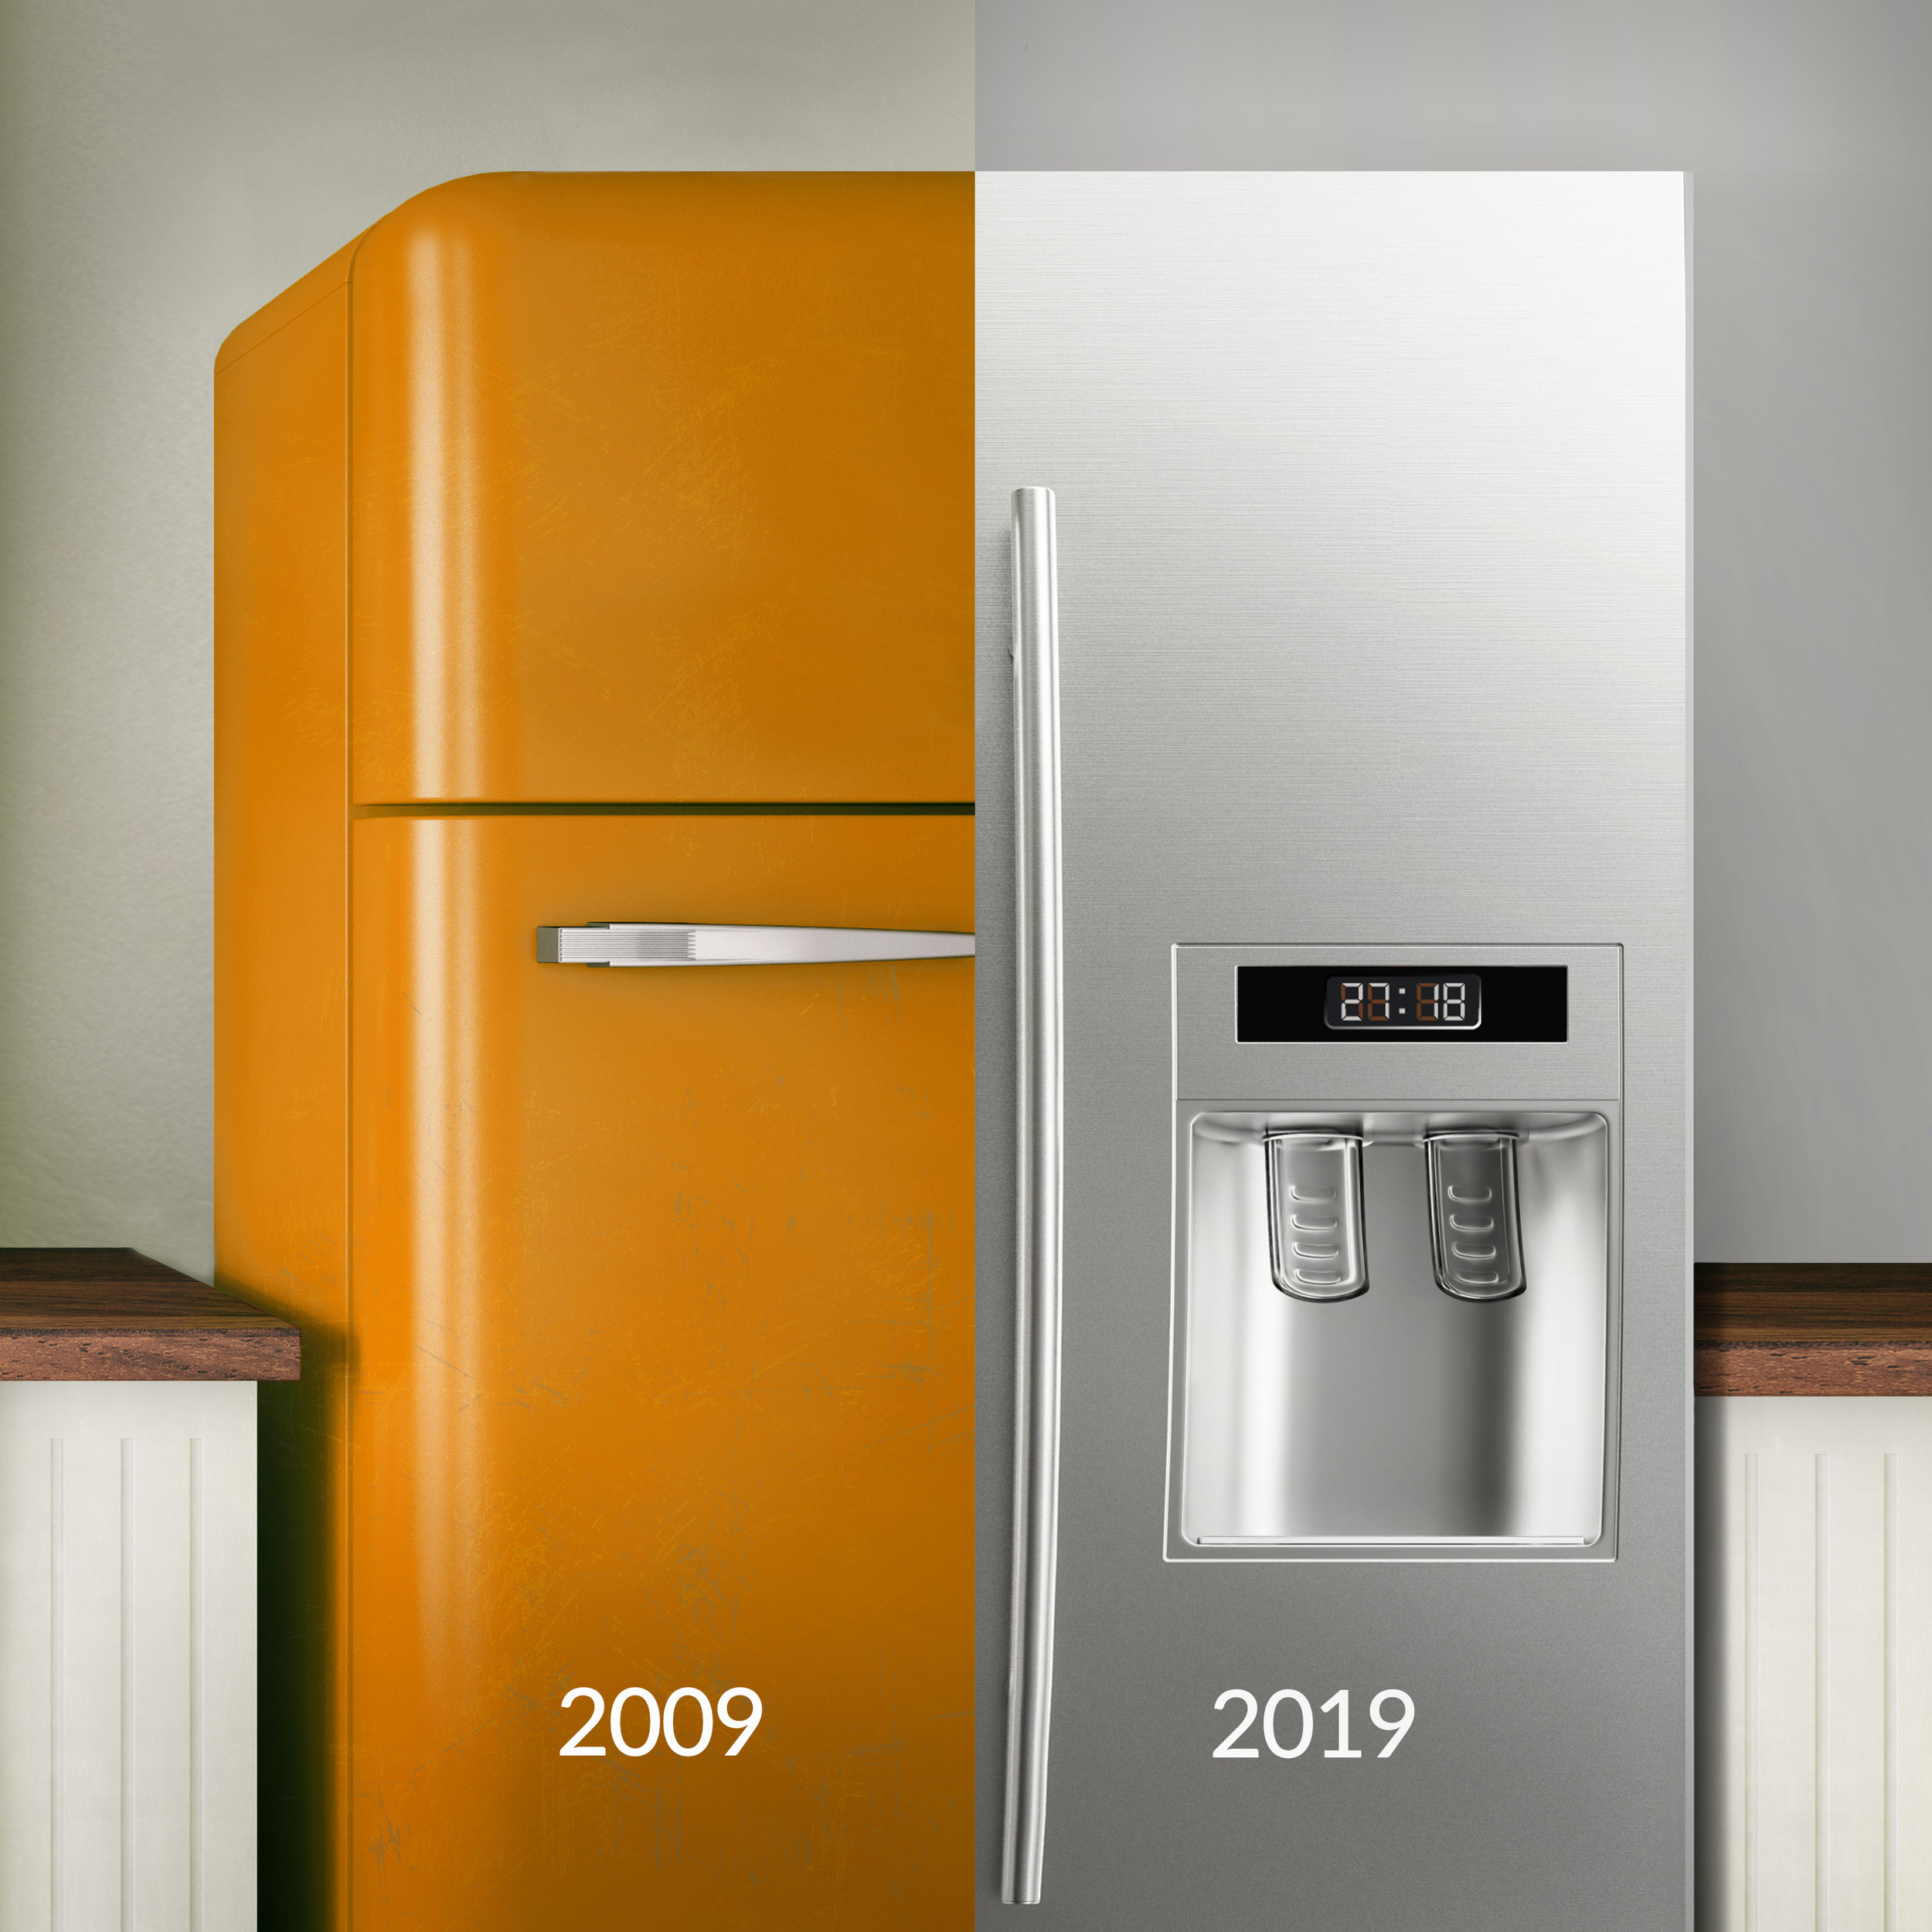 Here's our 10-year challenge! We think it's pretty chill. ❄️❄️ But you know what's even more chill? Upgrading your appliances to be more energy efficient. ⚡️  #EnergyEfficient   #SaveEnergy  #California   #10YearChallenge